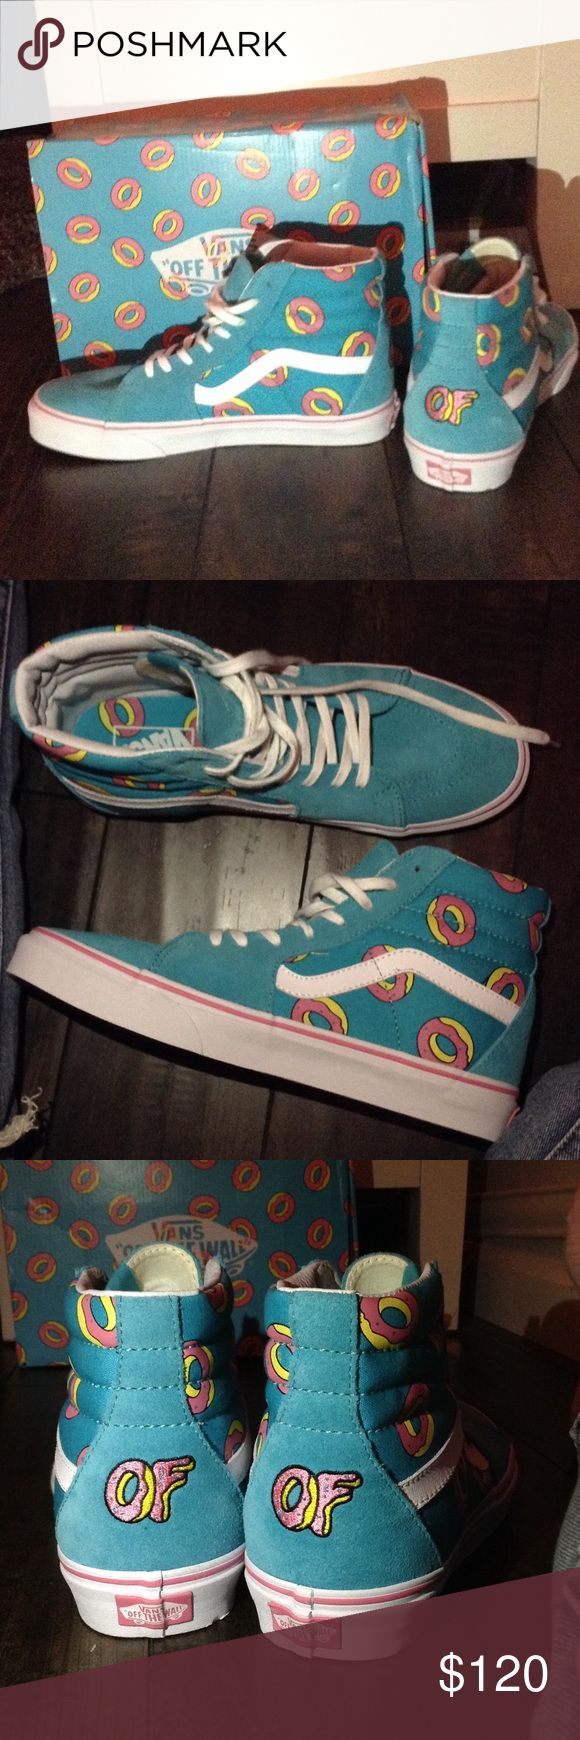 OFWGKTA VANS DONUT O SK8-HI SHOES *BRAND NEW* Just out of package never been worn size too big they are sold out on Odd Future website and they're very exclusive! They are soo cute but too big on me Vans Shoes Sneakers